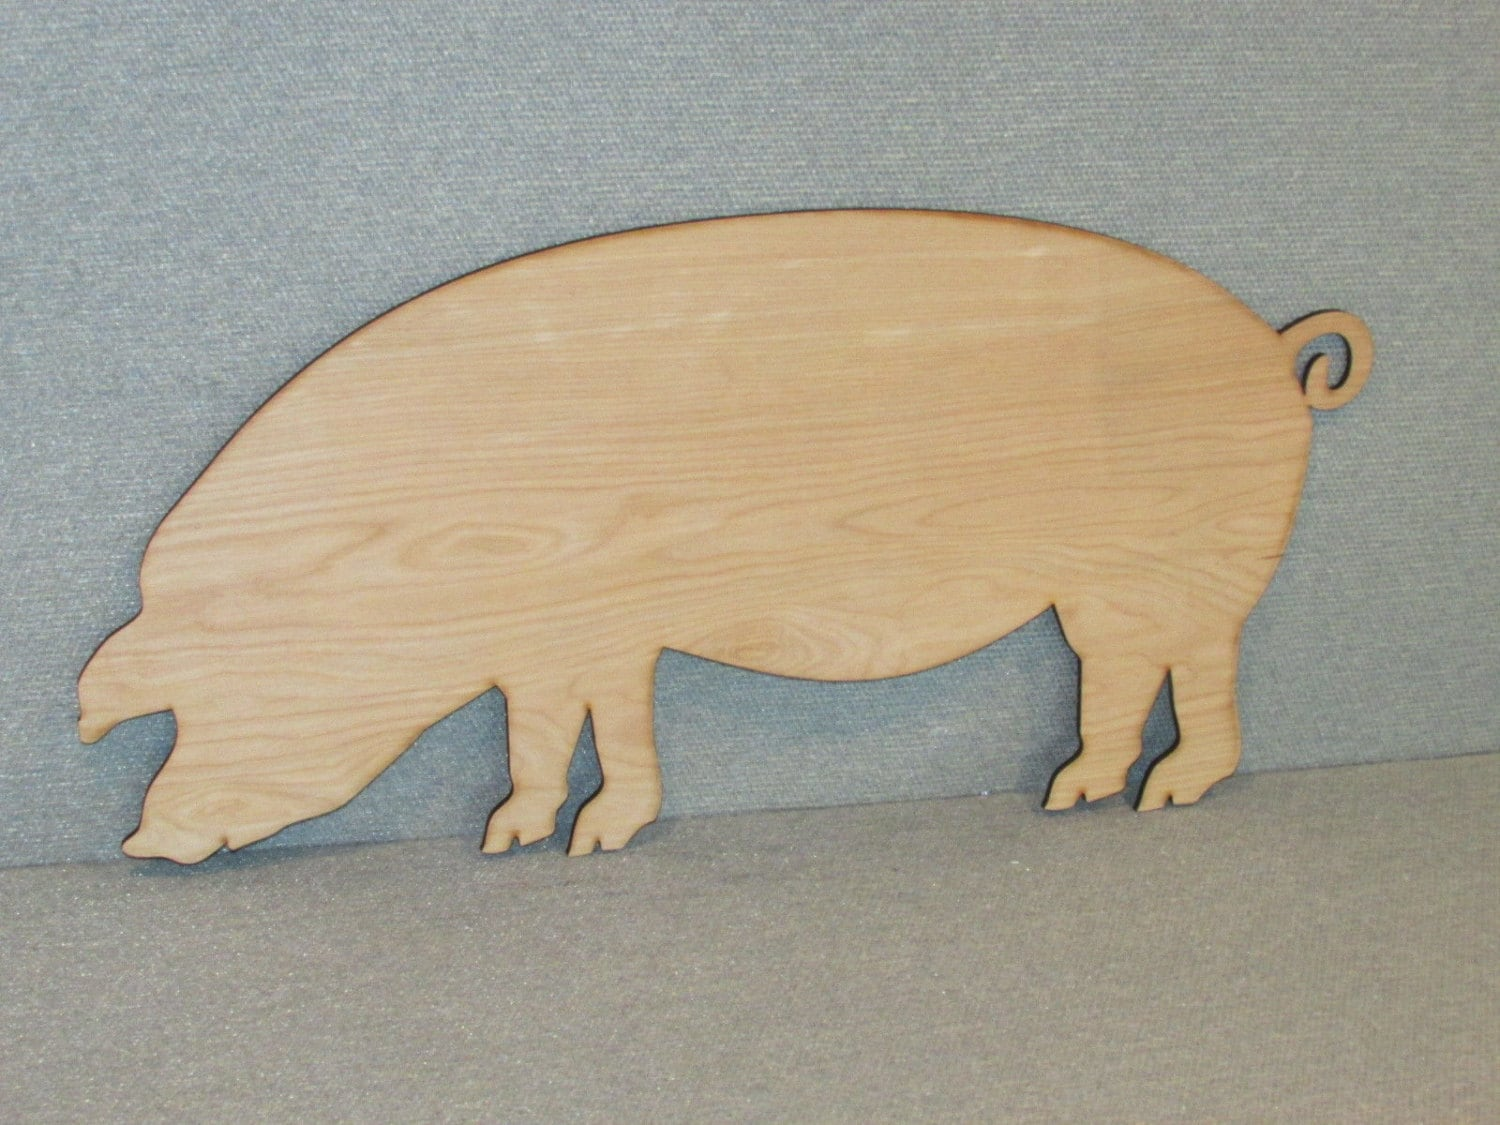 Pig decor 28 images pig home decor pig home decor for Pig decorations for home